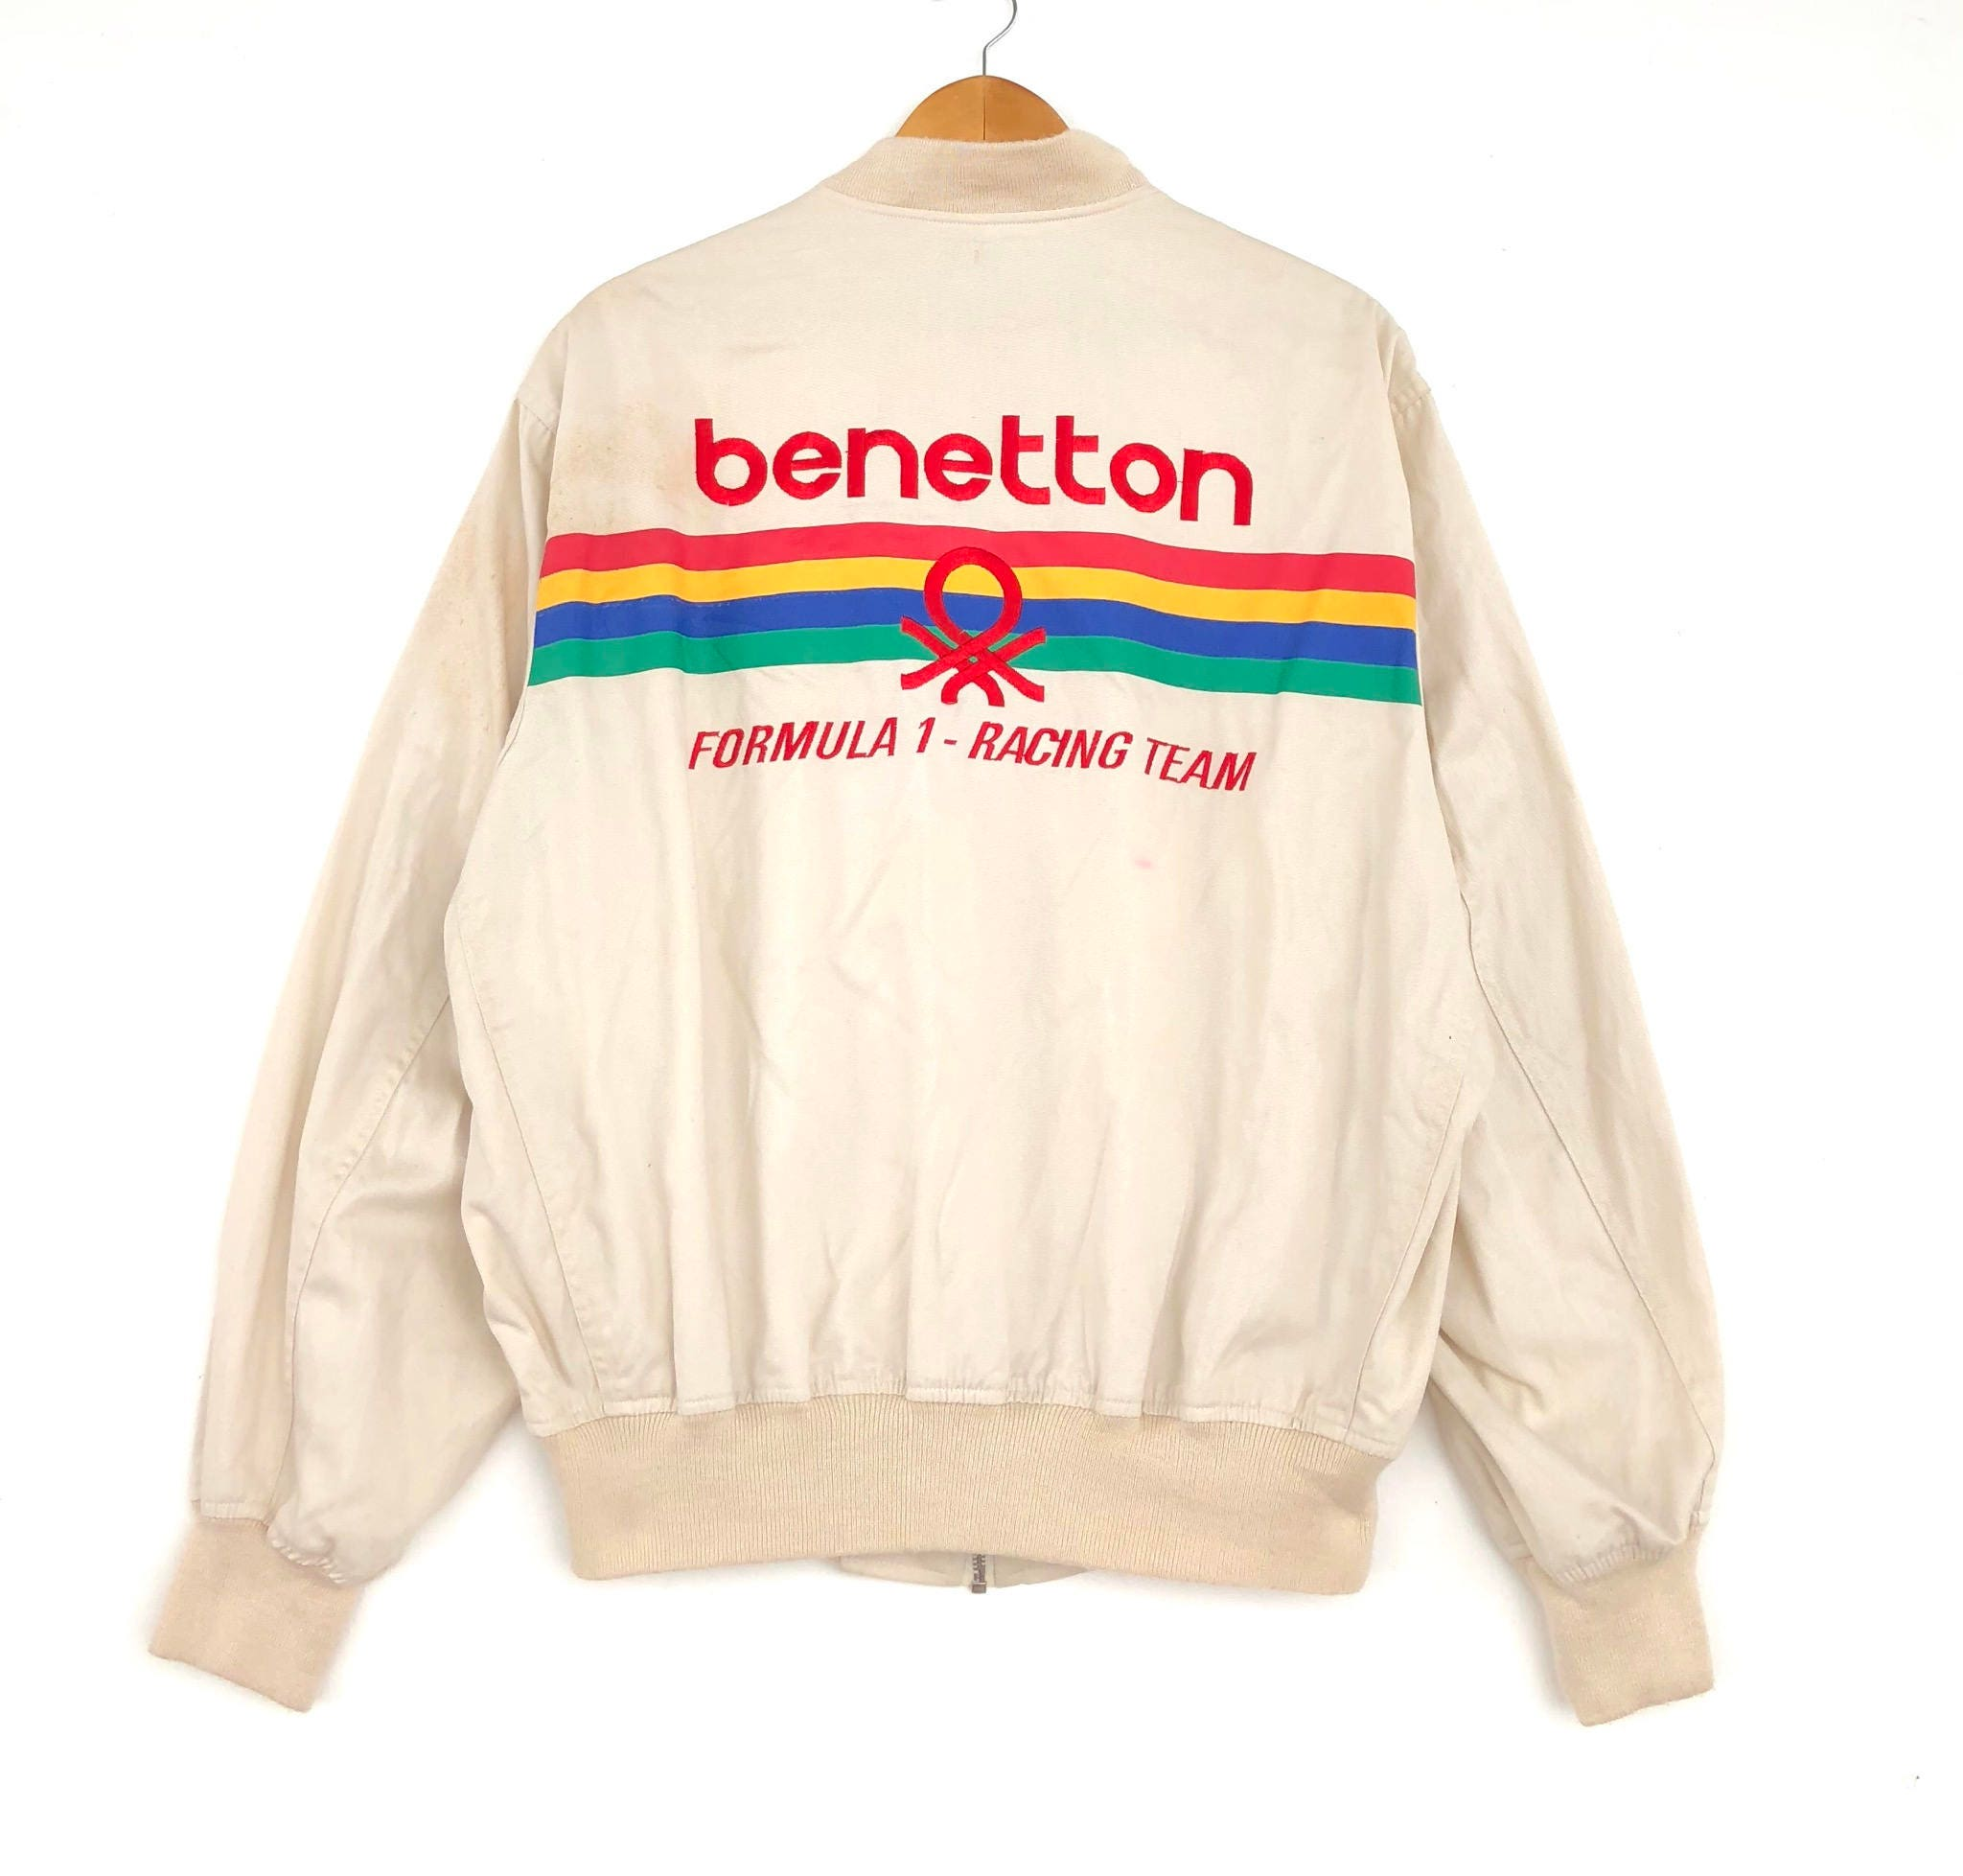 RARE!!! Benetton Formula 1 Racing Team Big Logo White Colour Crew Neck  Sweatshirts 6b6ed8241e07